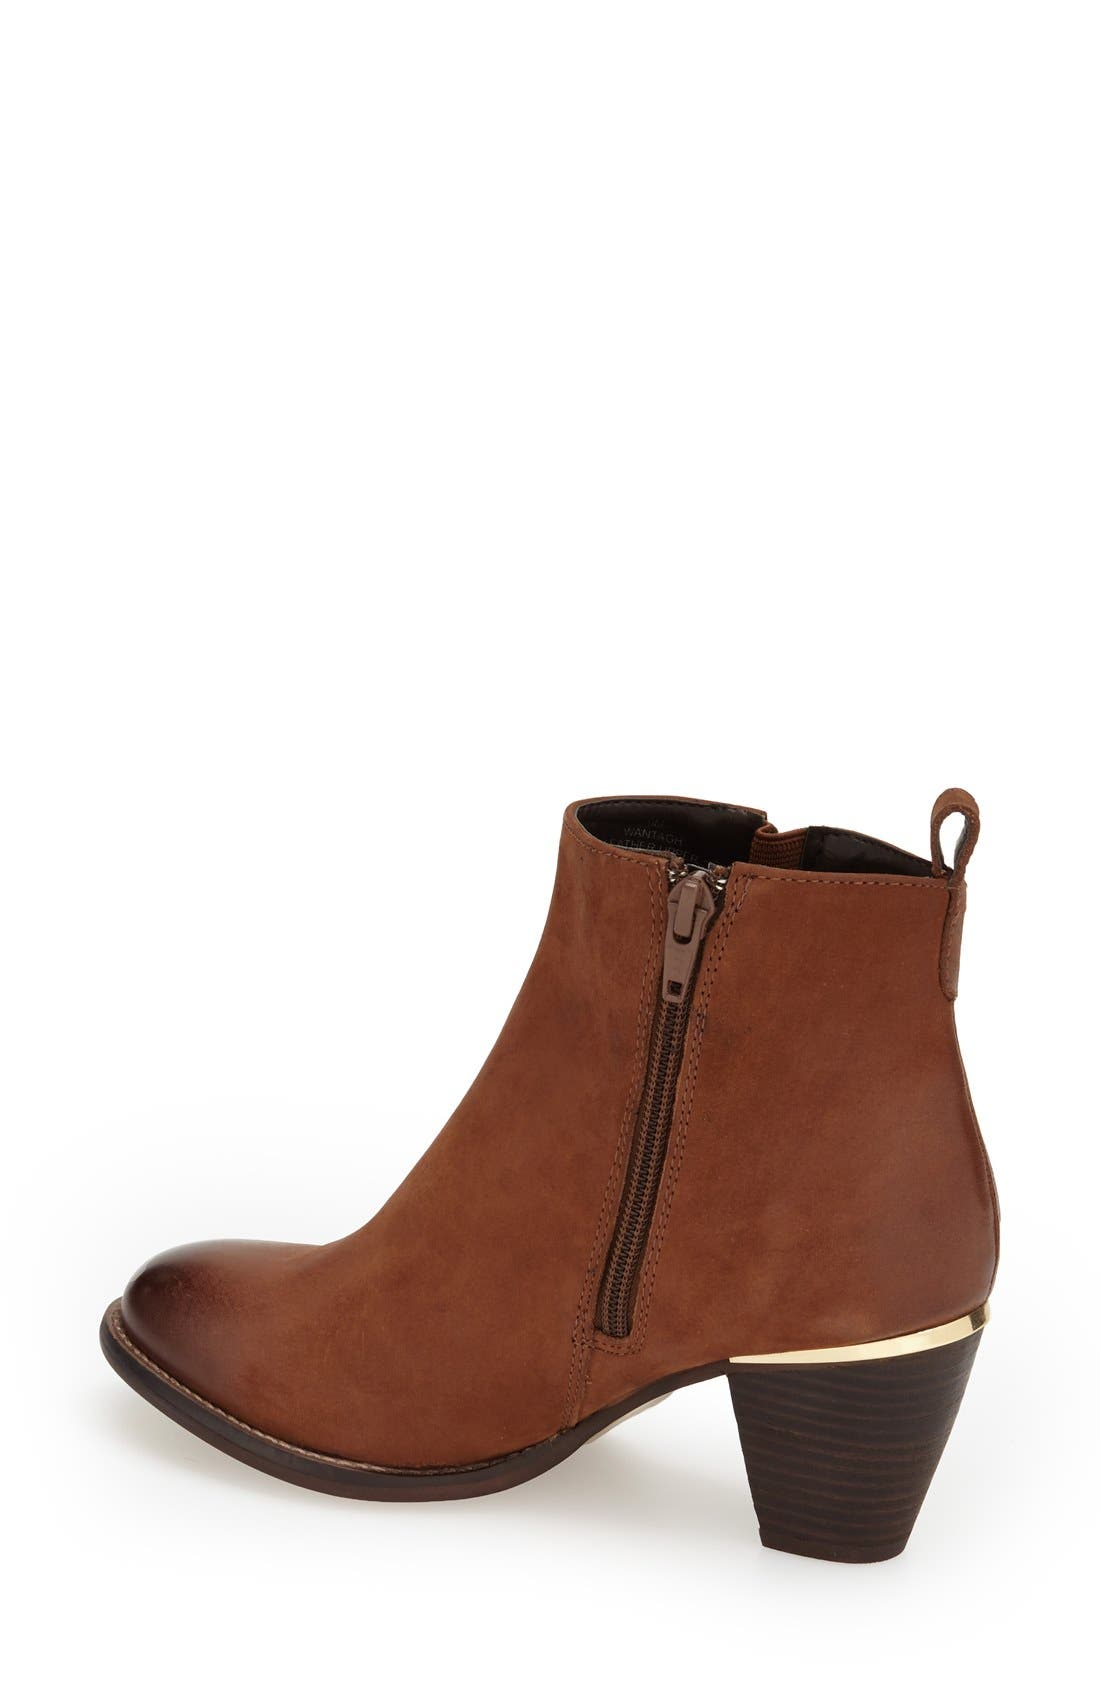 'Wantagh' Leather Ankle Boot,                             Alternate thumbnail 2, color,                             Cognac Leather